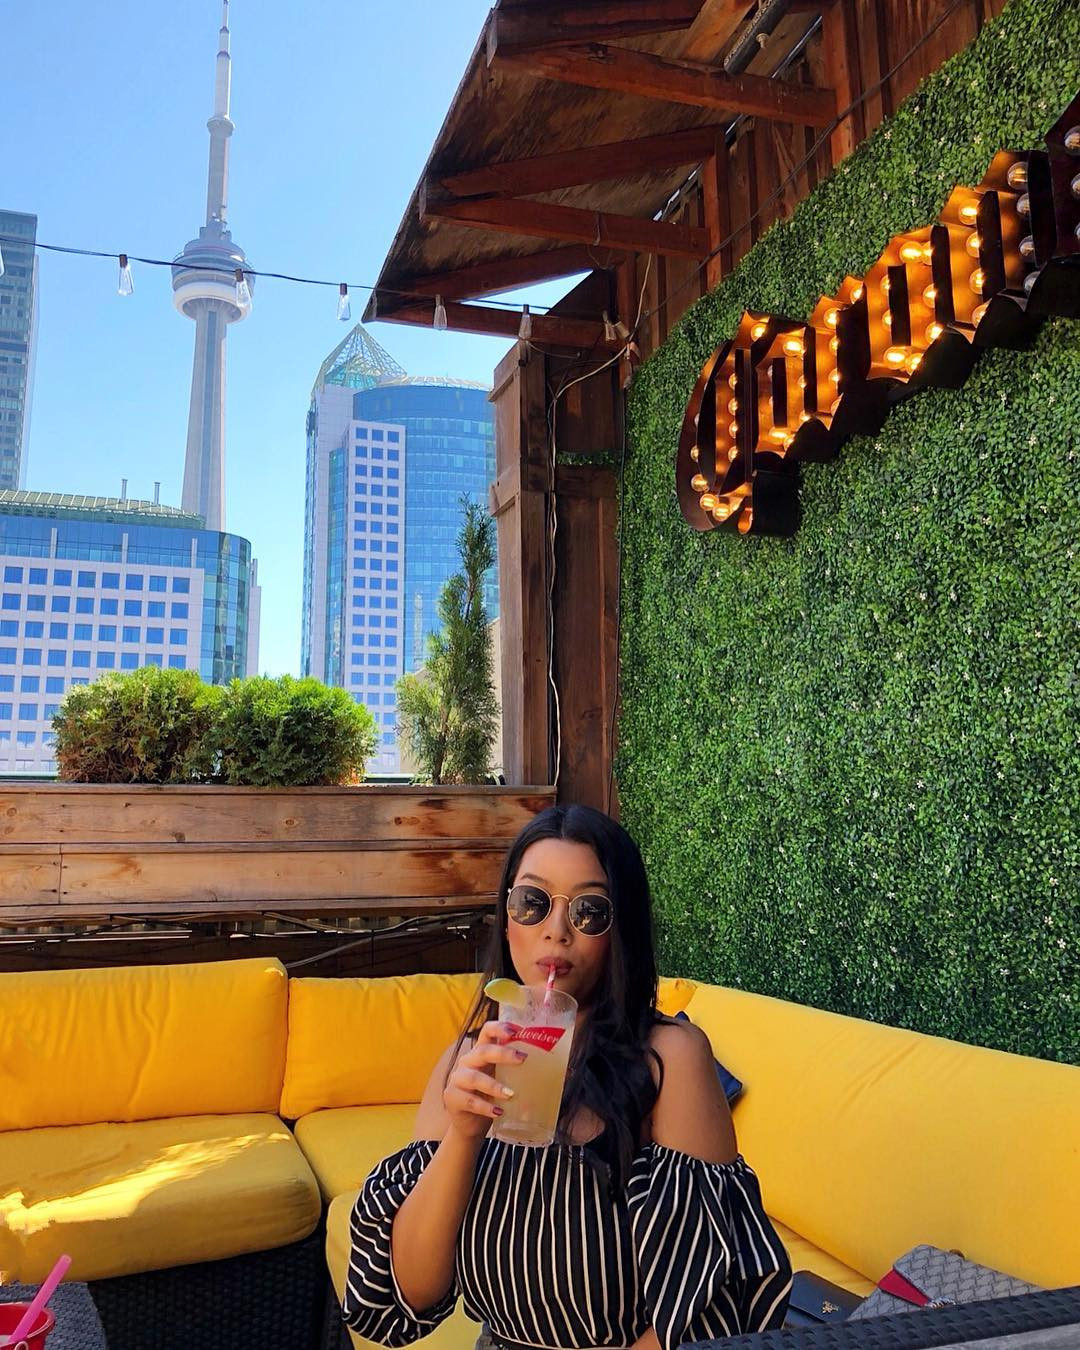 10 of the Best Rooftop Bars in Toronto (with Map)